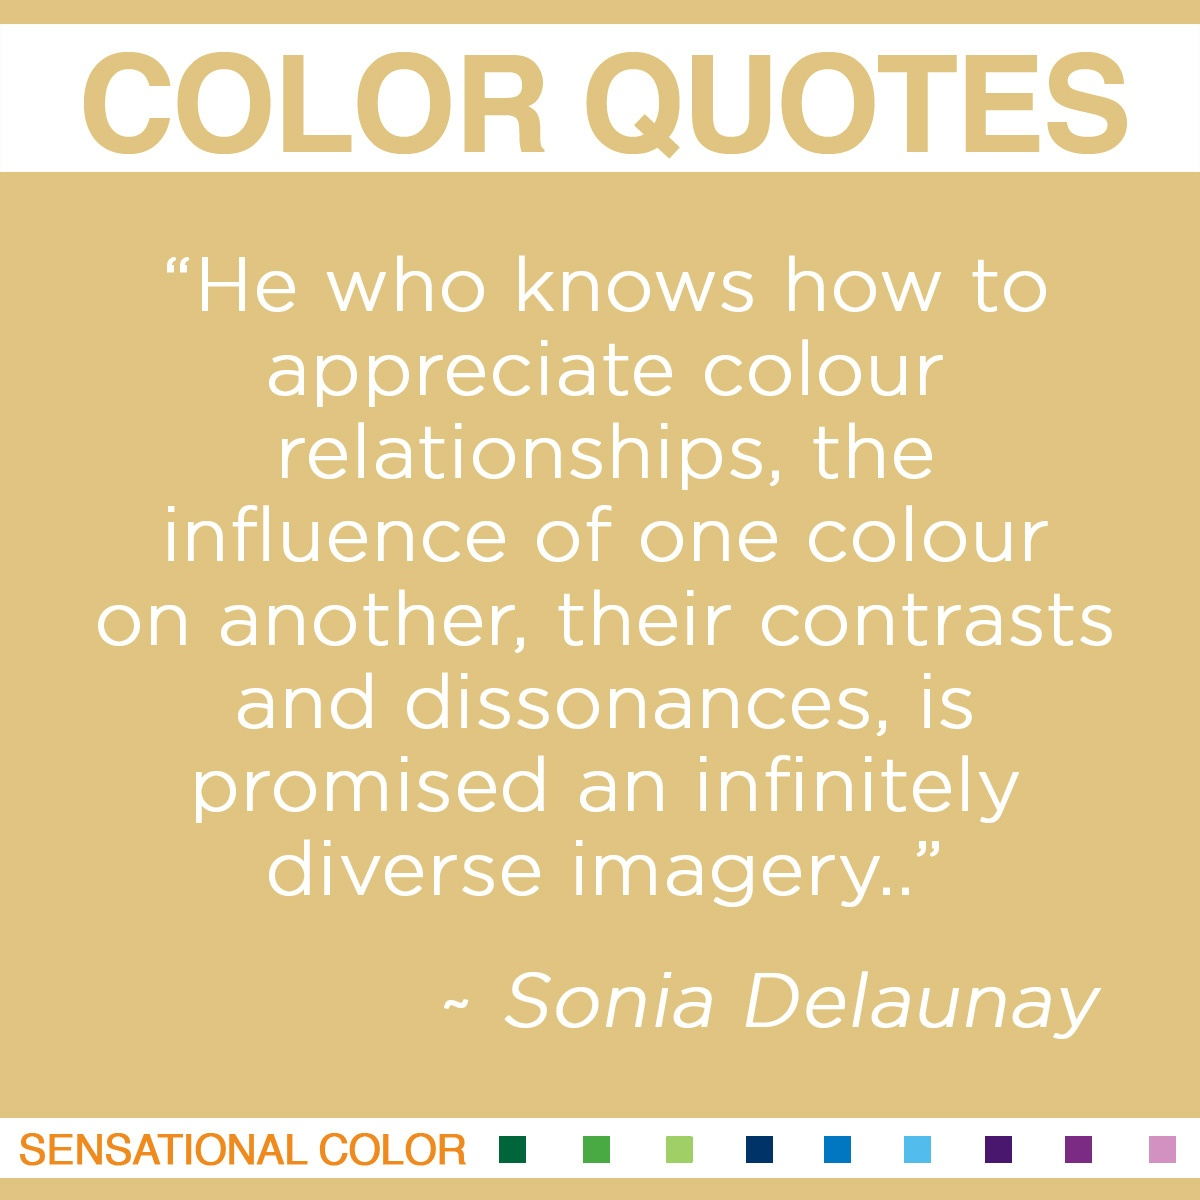 """He who knows how to appreciate colour relationships, the influence of one colour on another, their contrasts and dissonances, is promised an infinitely diverse imagery."" - Sonia Delaunay"